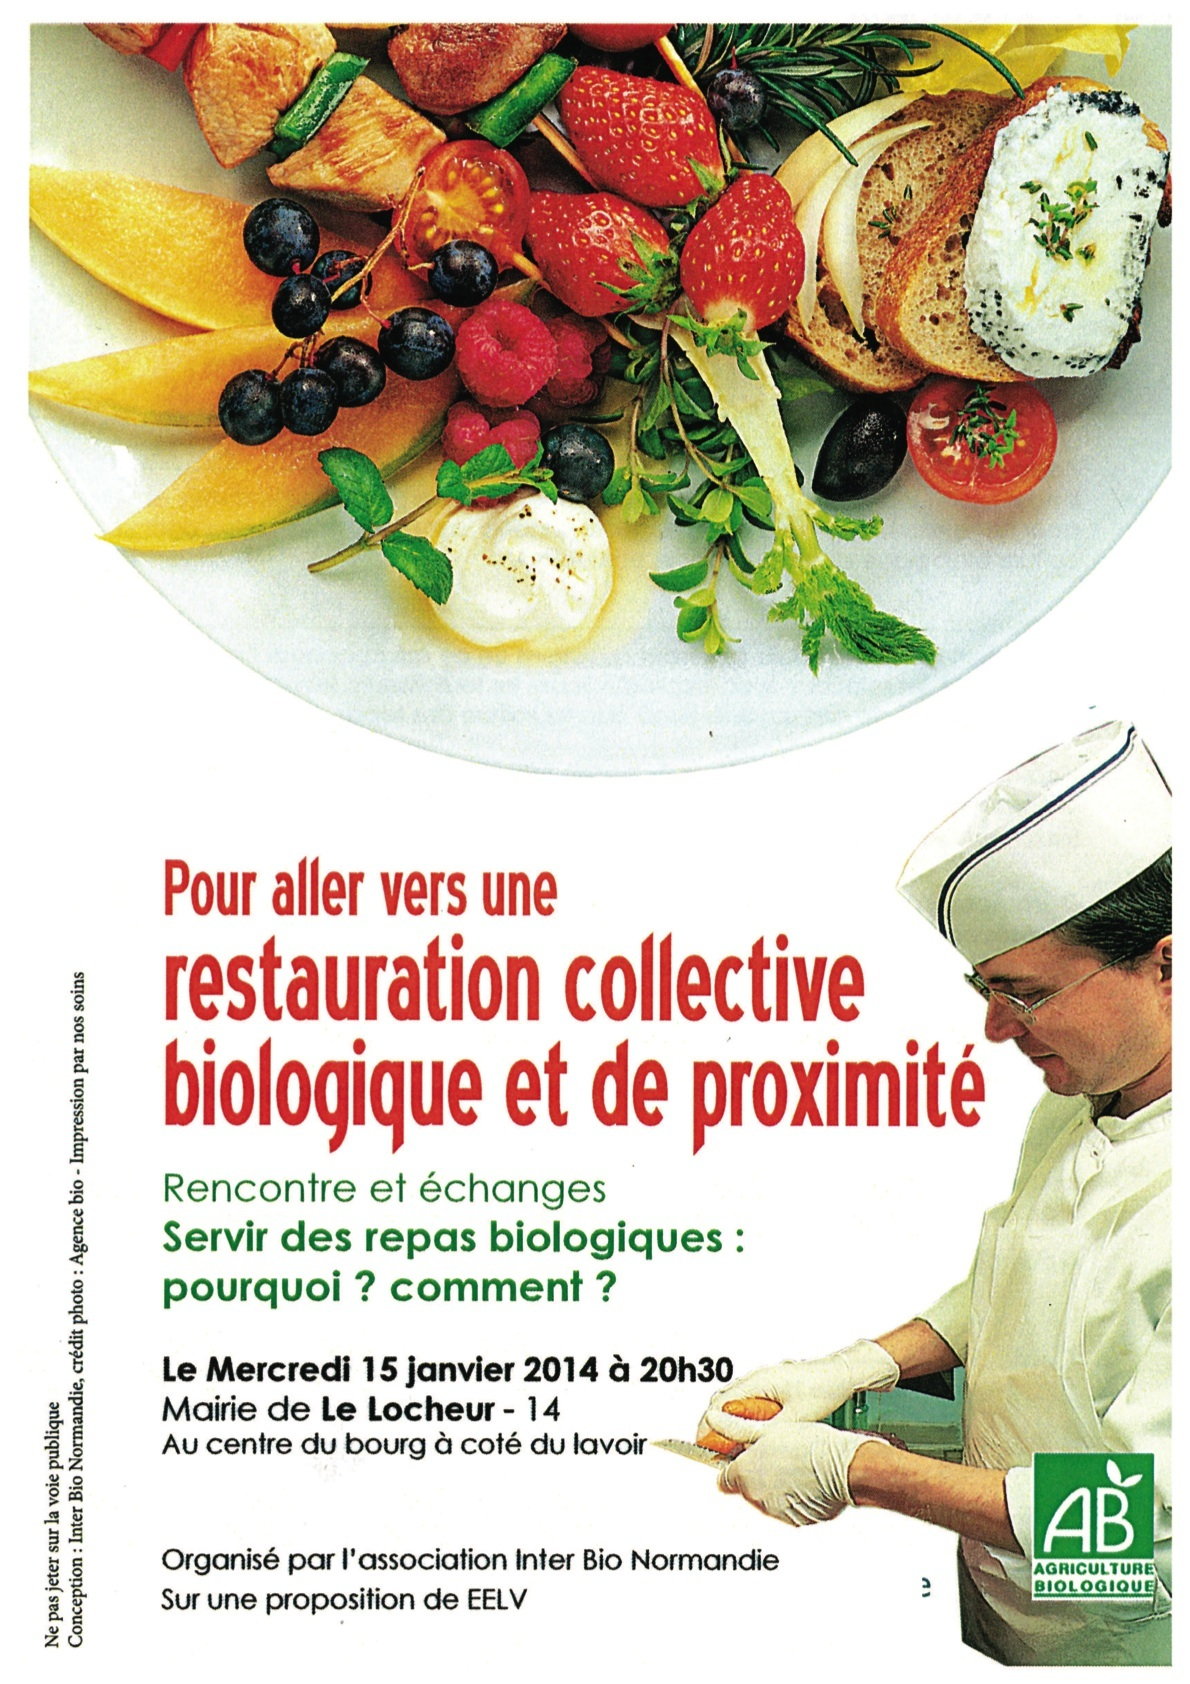 Restauration collective basse normandie for Restauration collective alsace